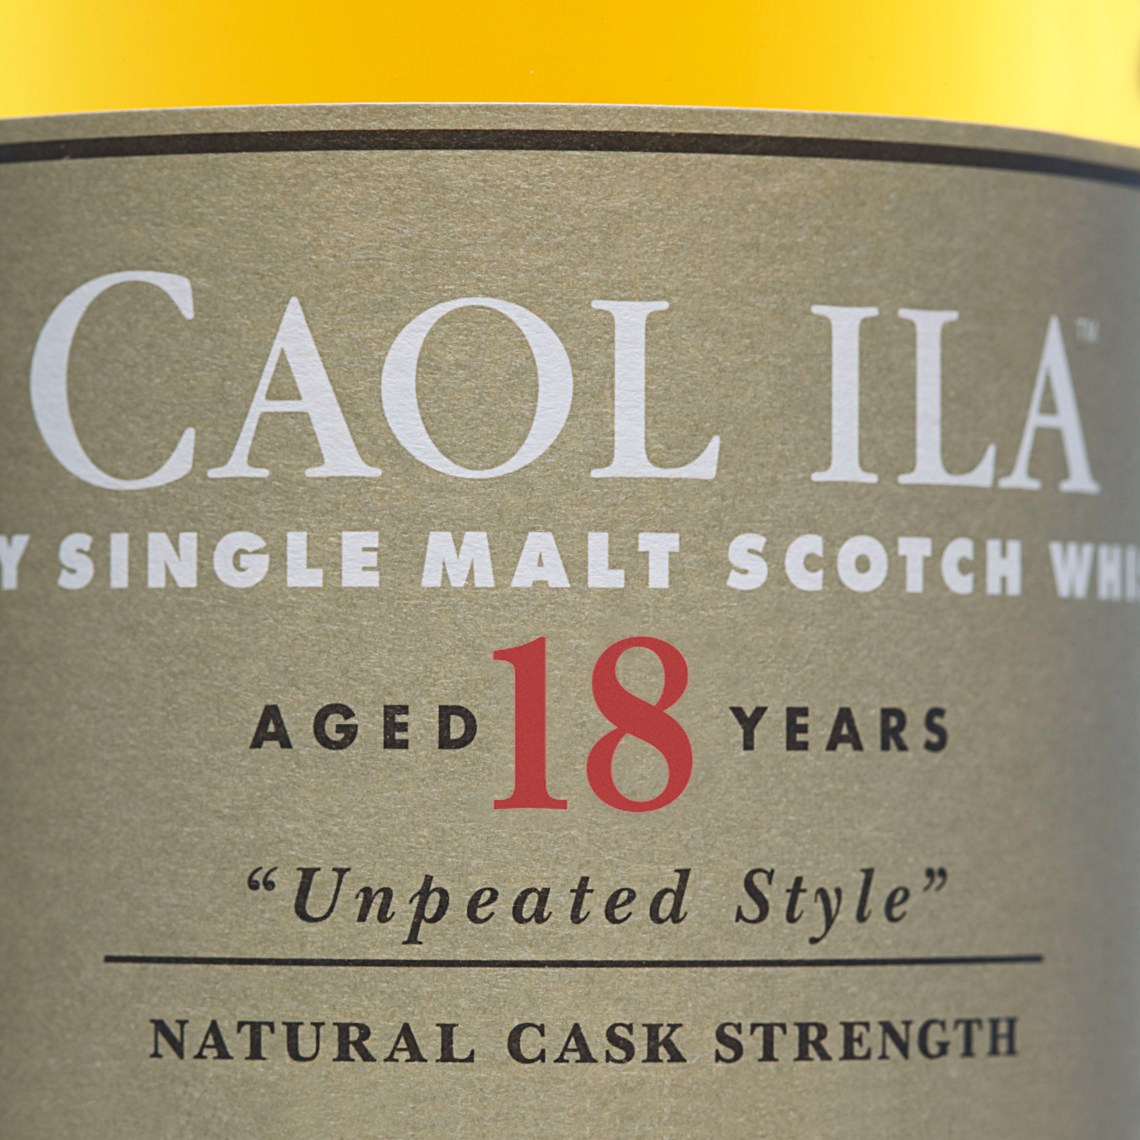 Caol Ila Unpeated 18 Years Old Limited Edition 2017